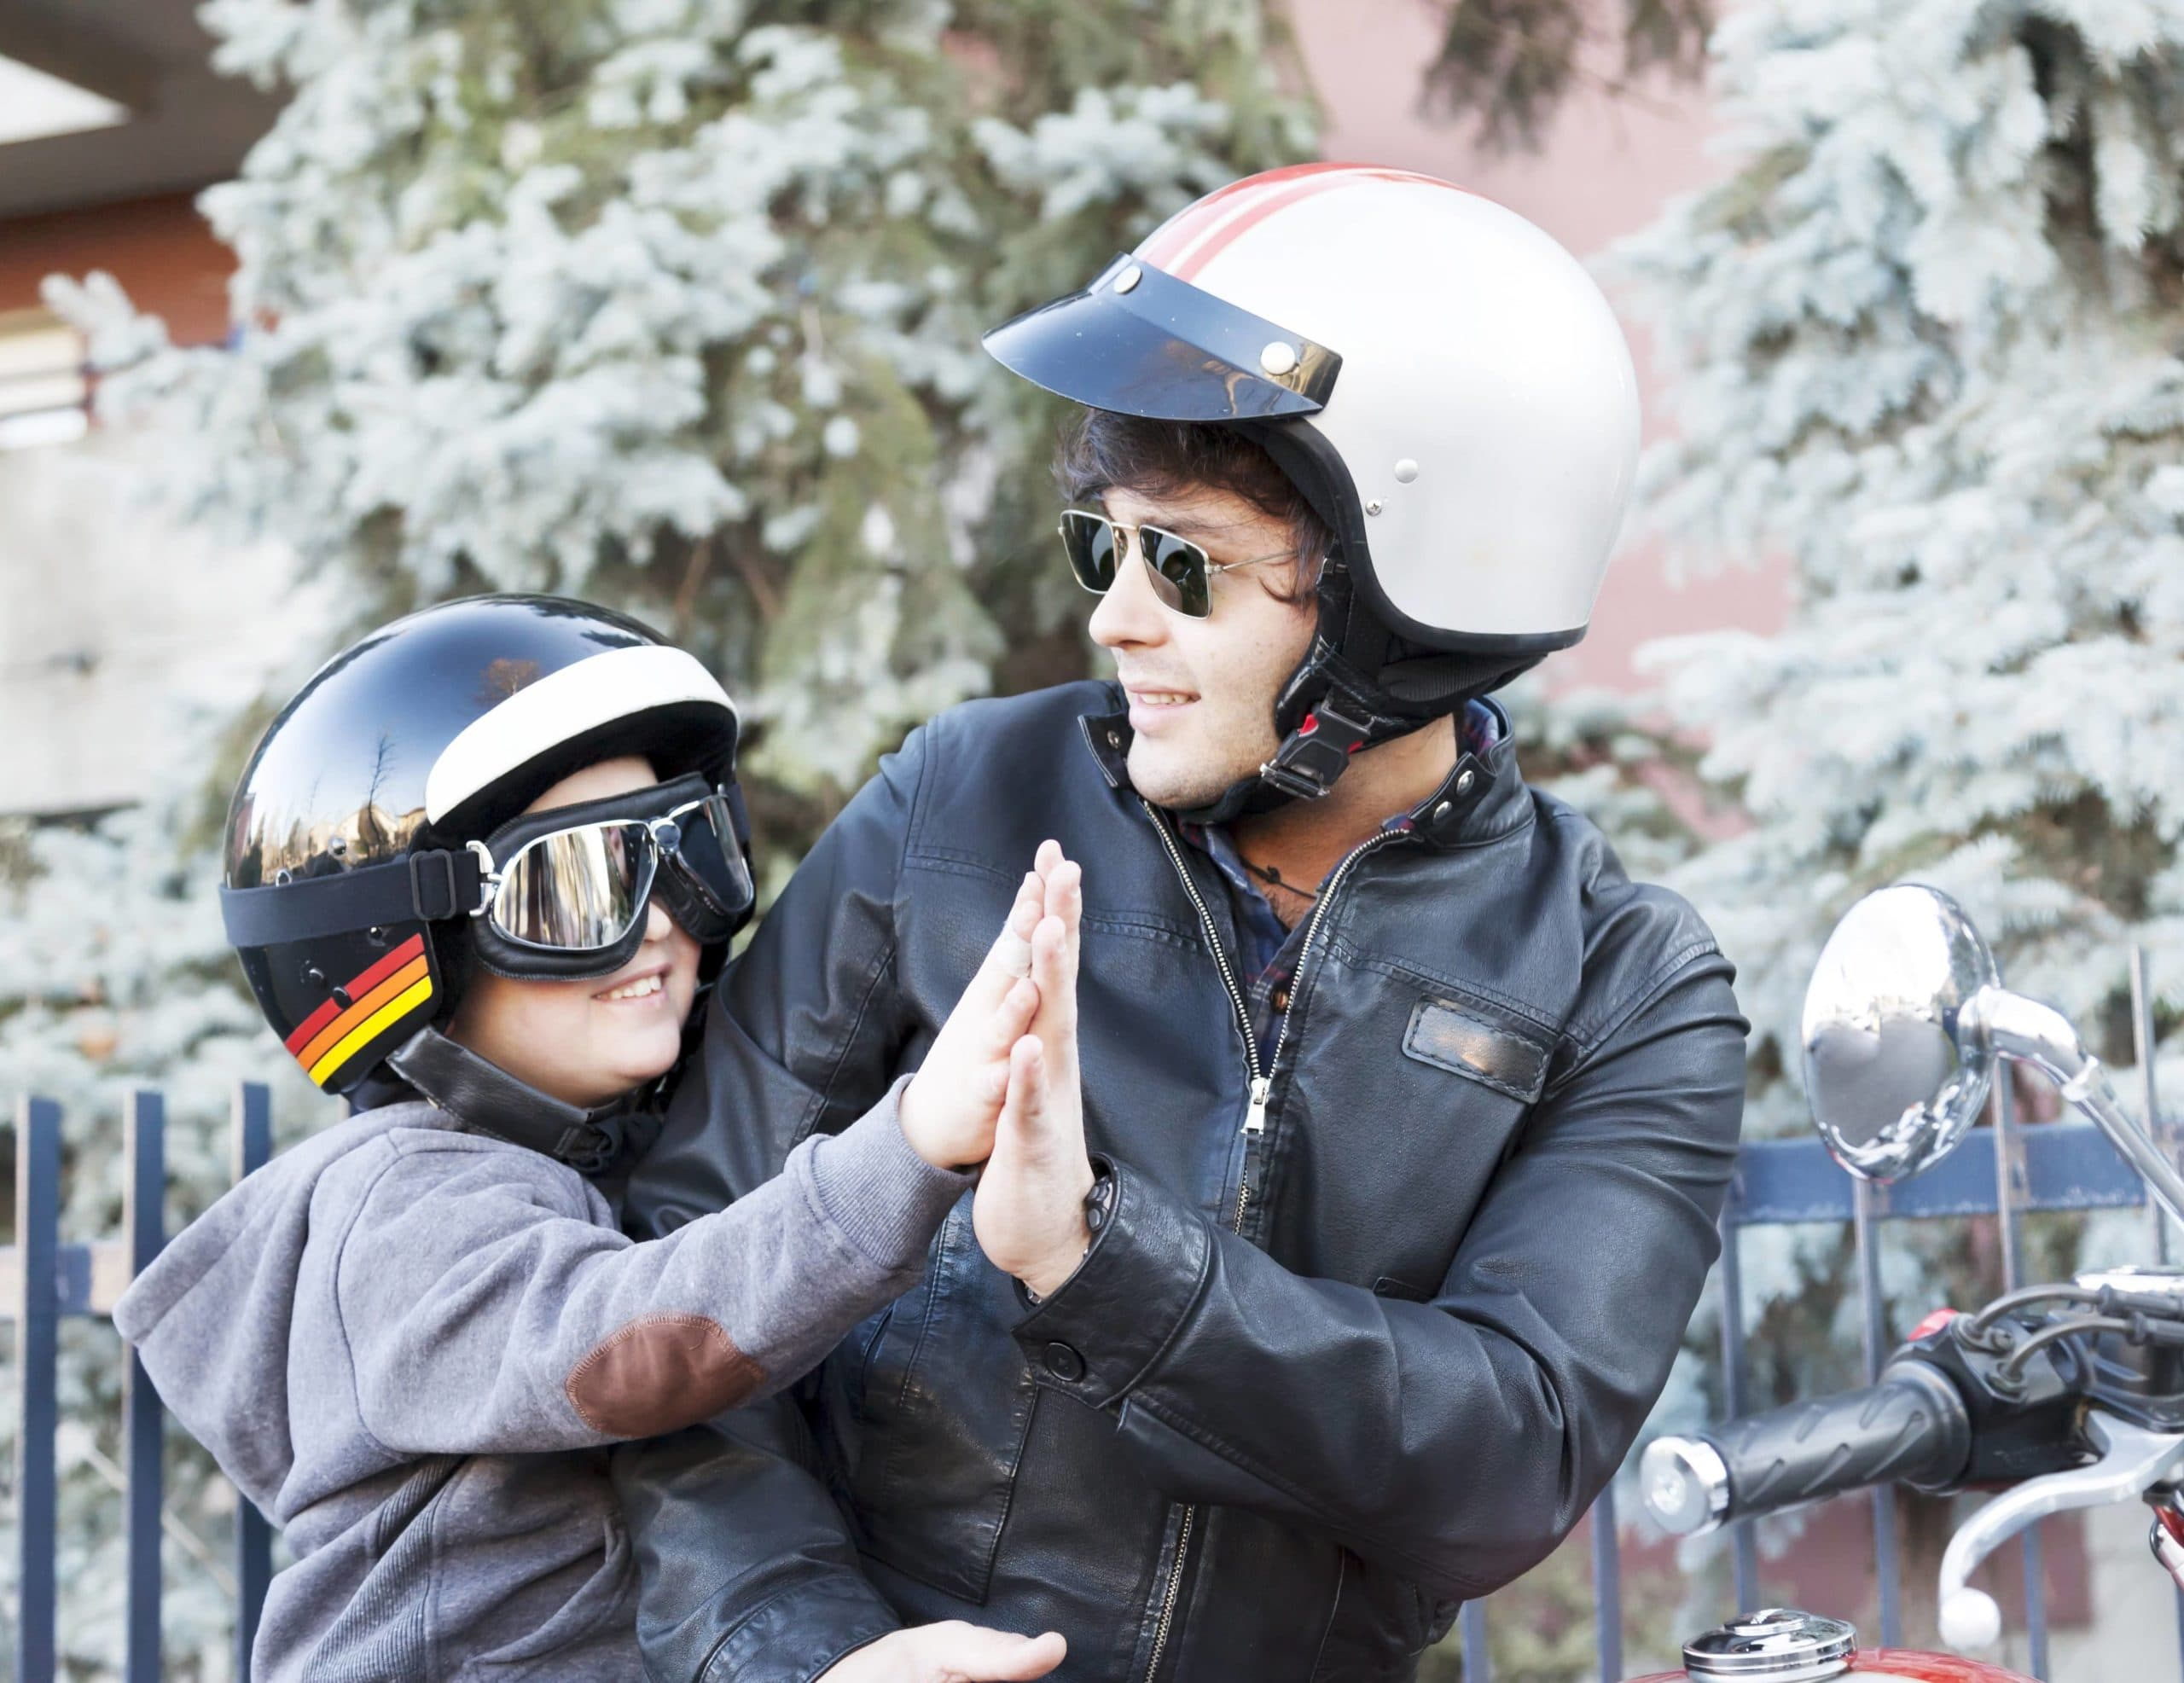 Kid on motorcycle wearing helmet and goggles for safety.